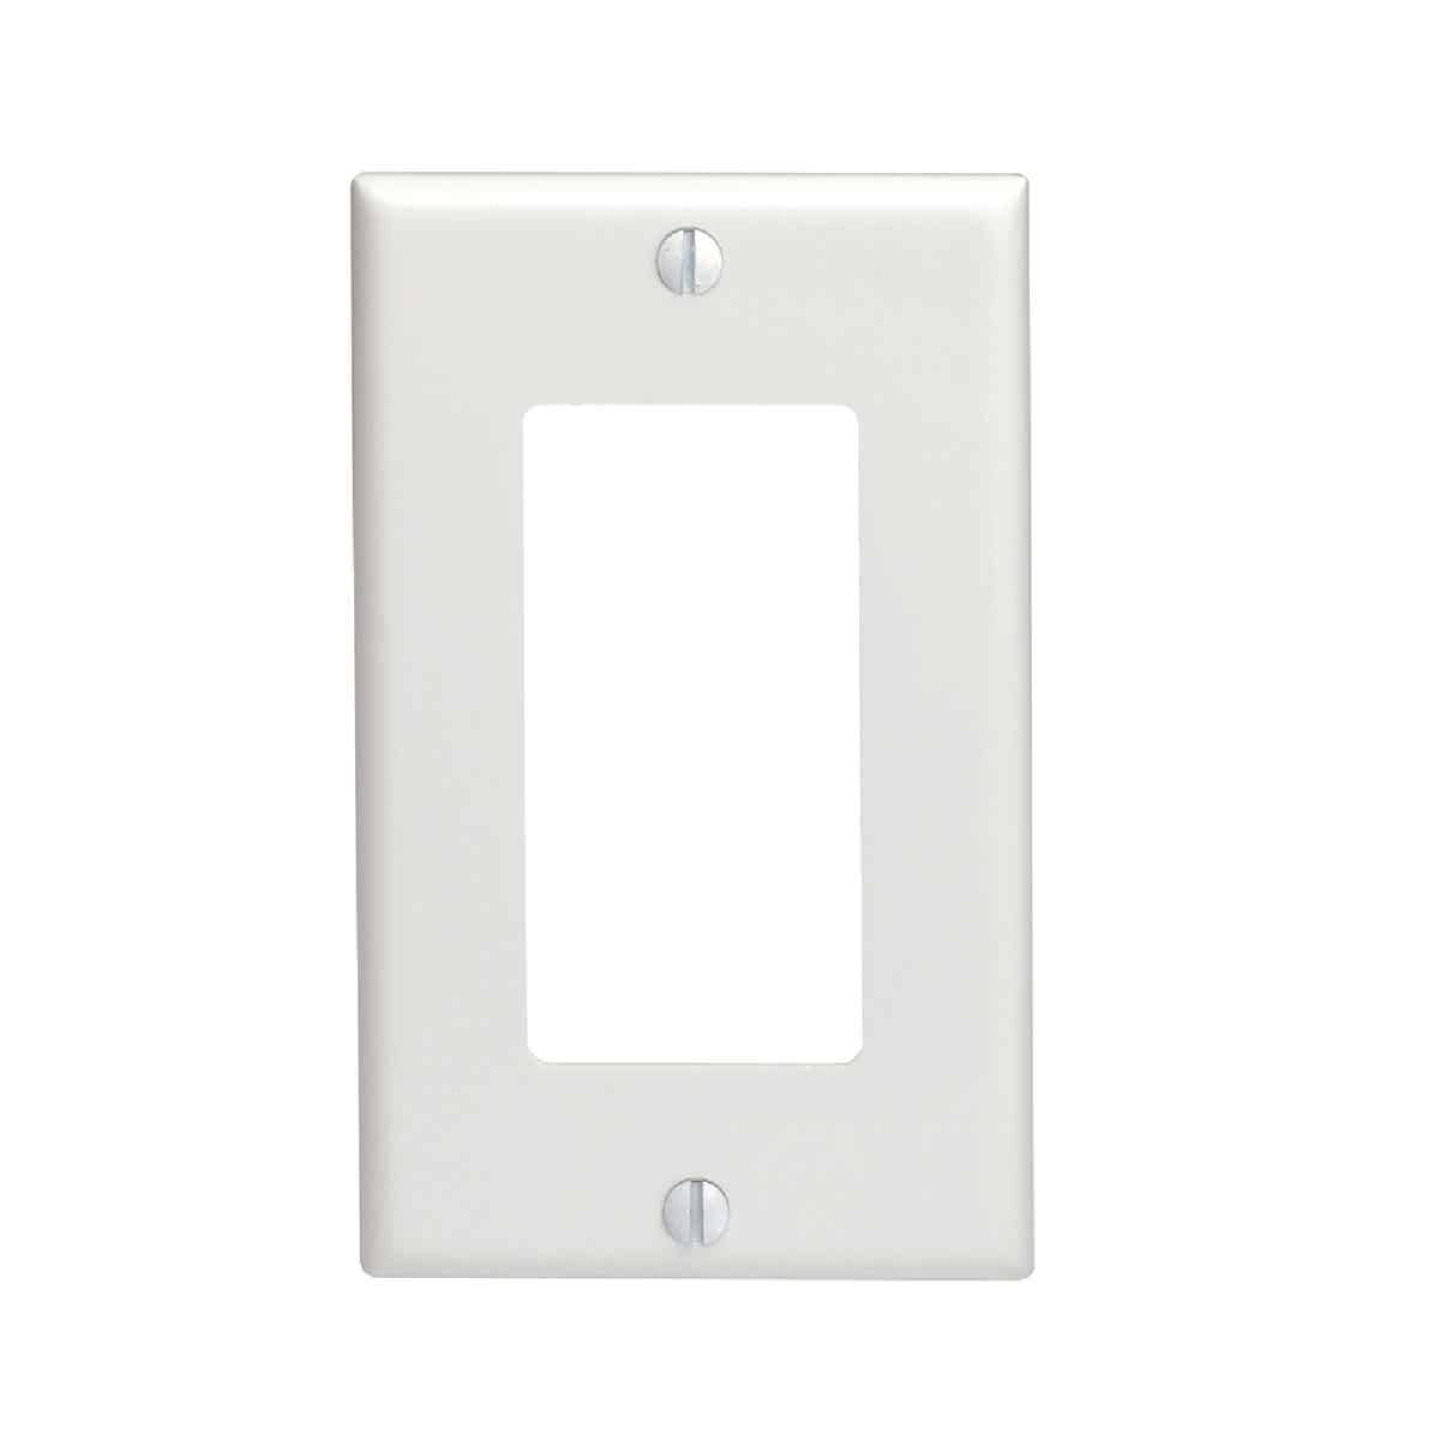 Leviton Decora 1-Gang Nylon Rocker Decorator Wall Plate, White Image 1